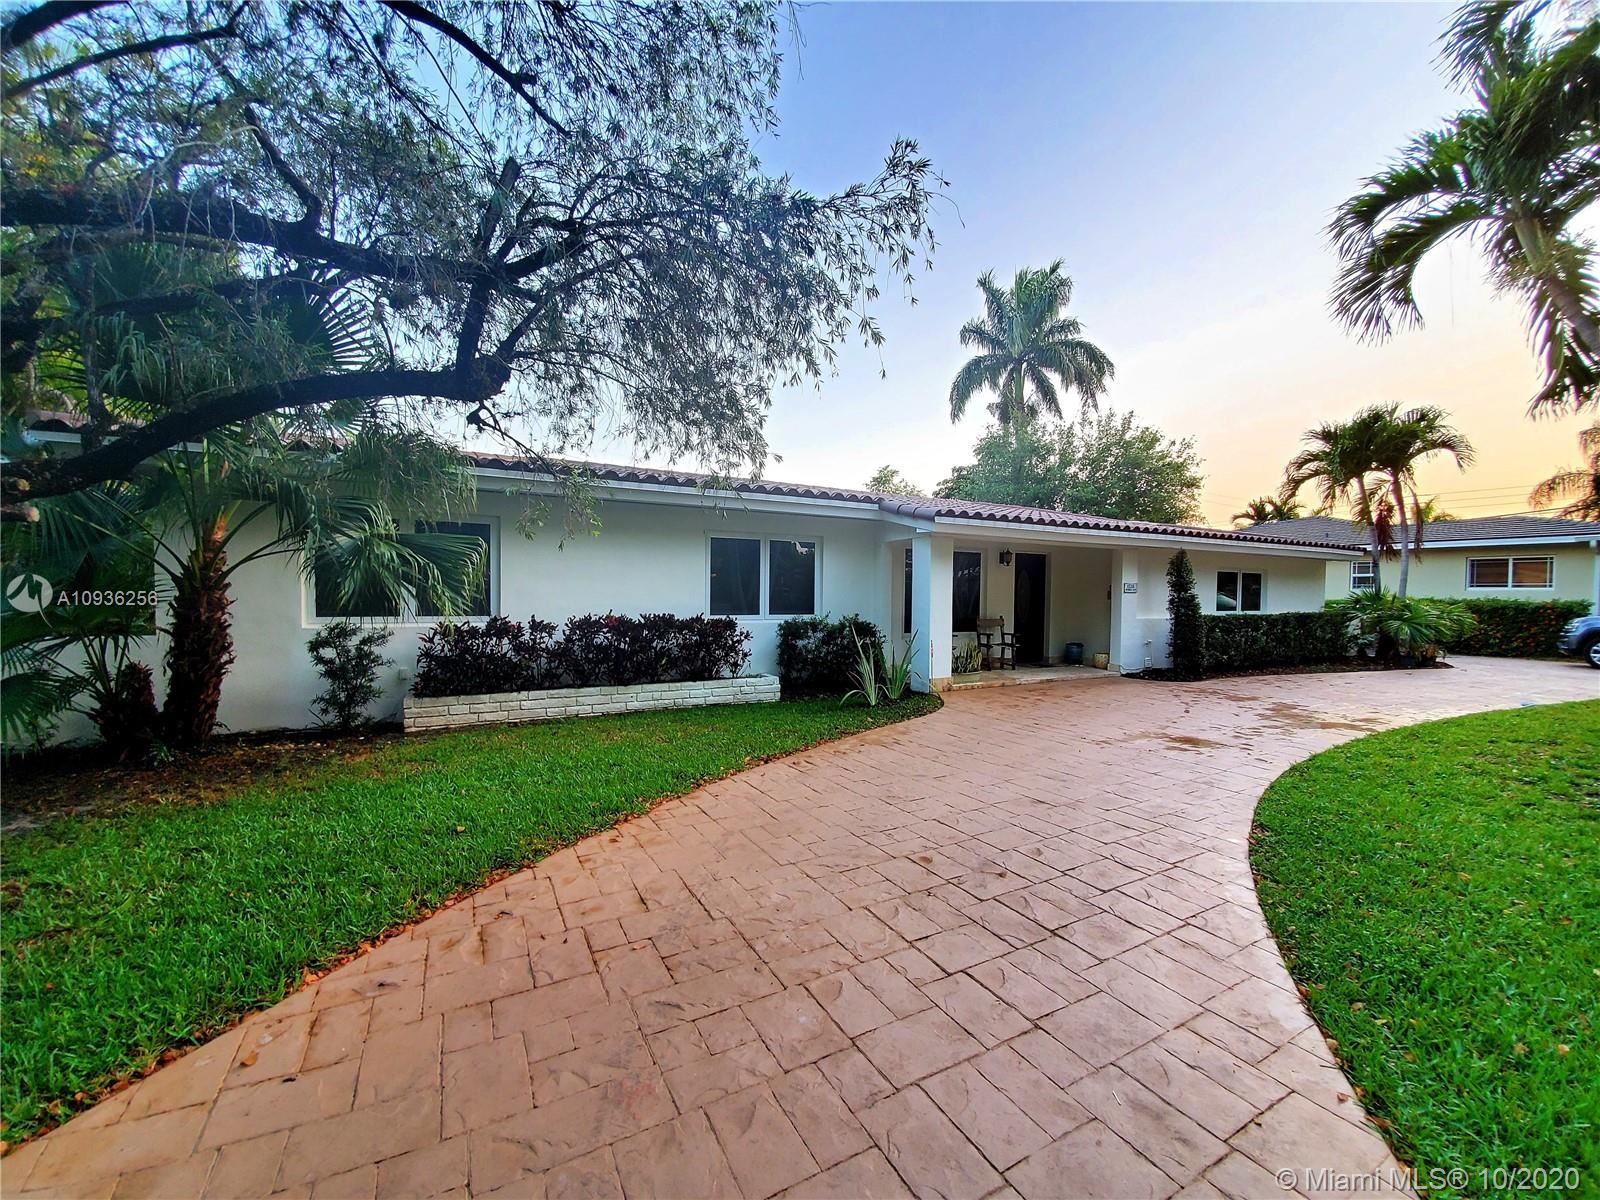 1528 Robbia Ave, Coral Gables, FL 33146 - #: A10936256